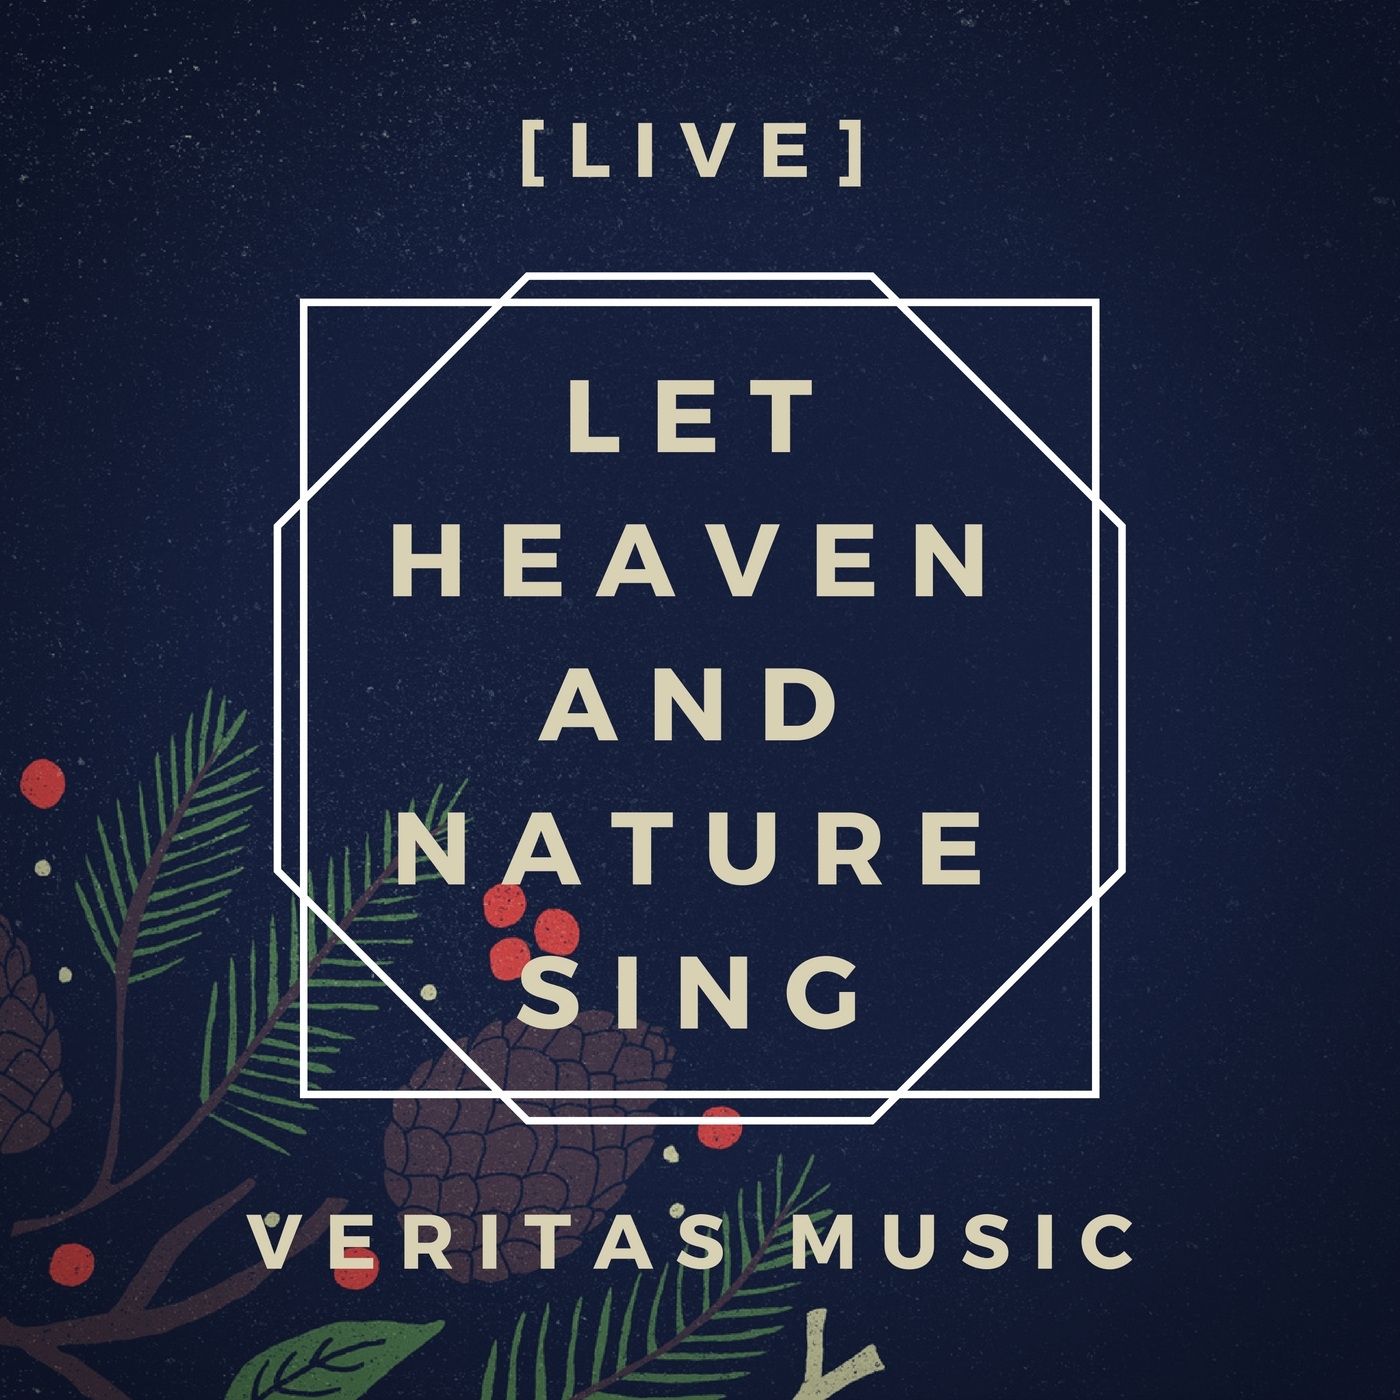 Let Heaven and Nature Sing (Live) - Album Cover-2.jpg